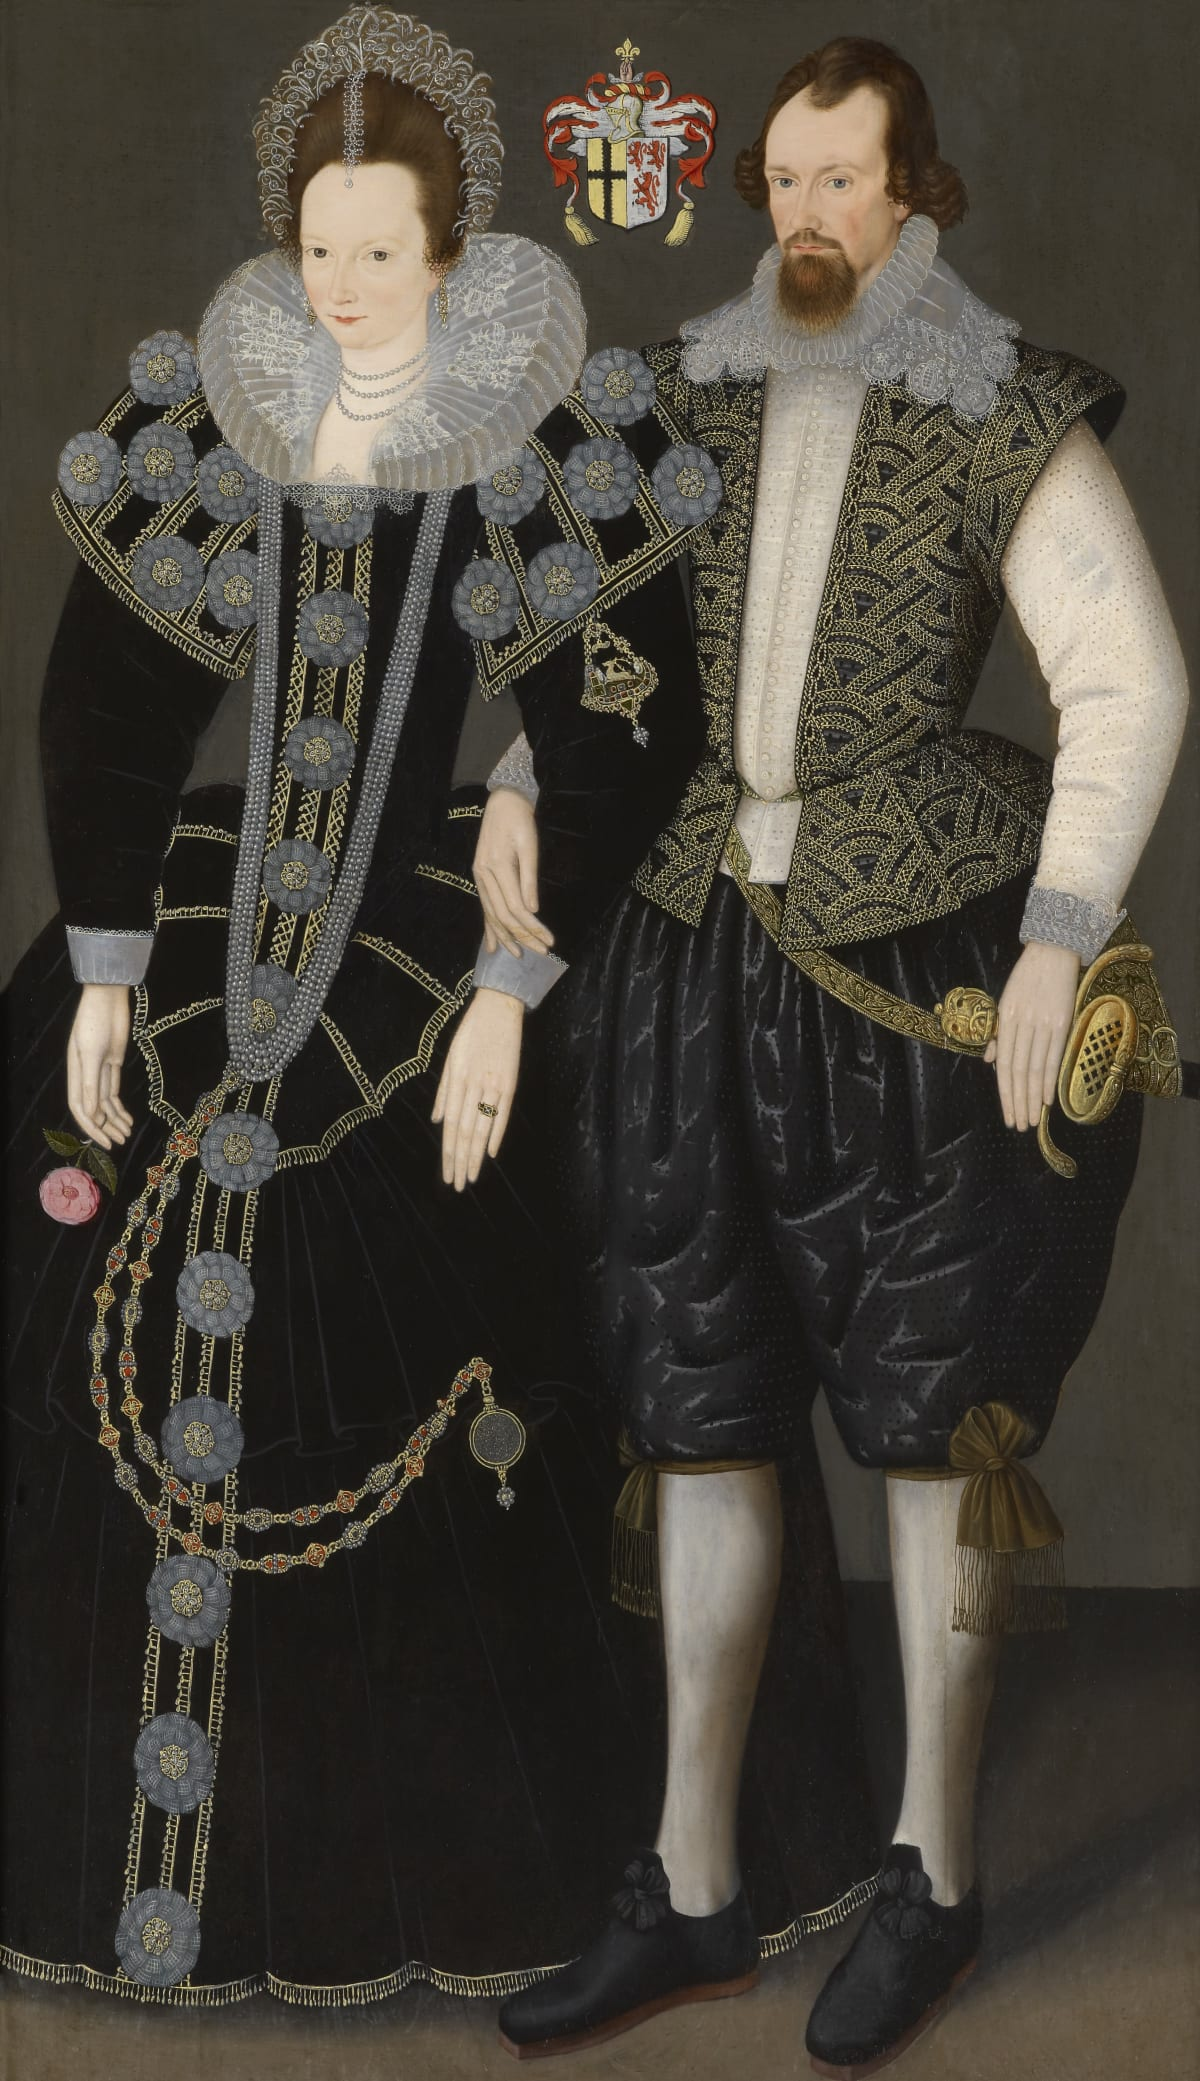 Unknown Follower of Custodis (fl. 1592 – 1612) Sir Reginald Mohun, 1st Bt. of Hall and Boconnoc (c.1564 – 1639) and his wife, Dorothy Chudleigh of Ashton, Devon, circa 1604 Oil on panel 75 x 44 in. (190.5 x 111.4 cm.)